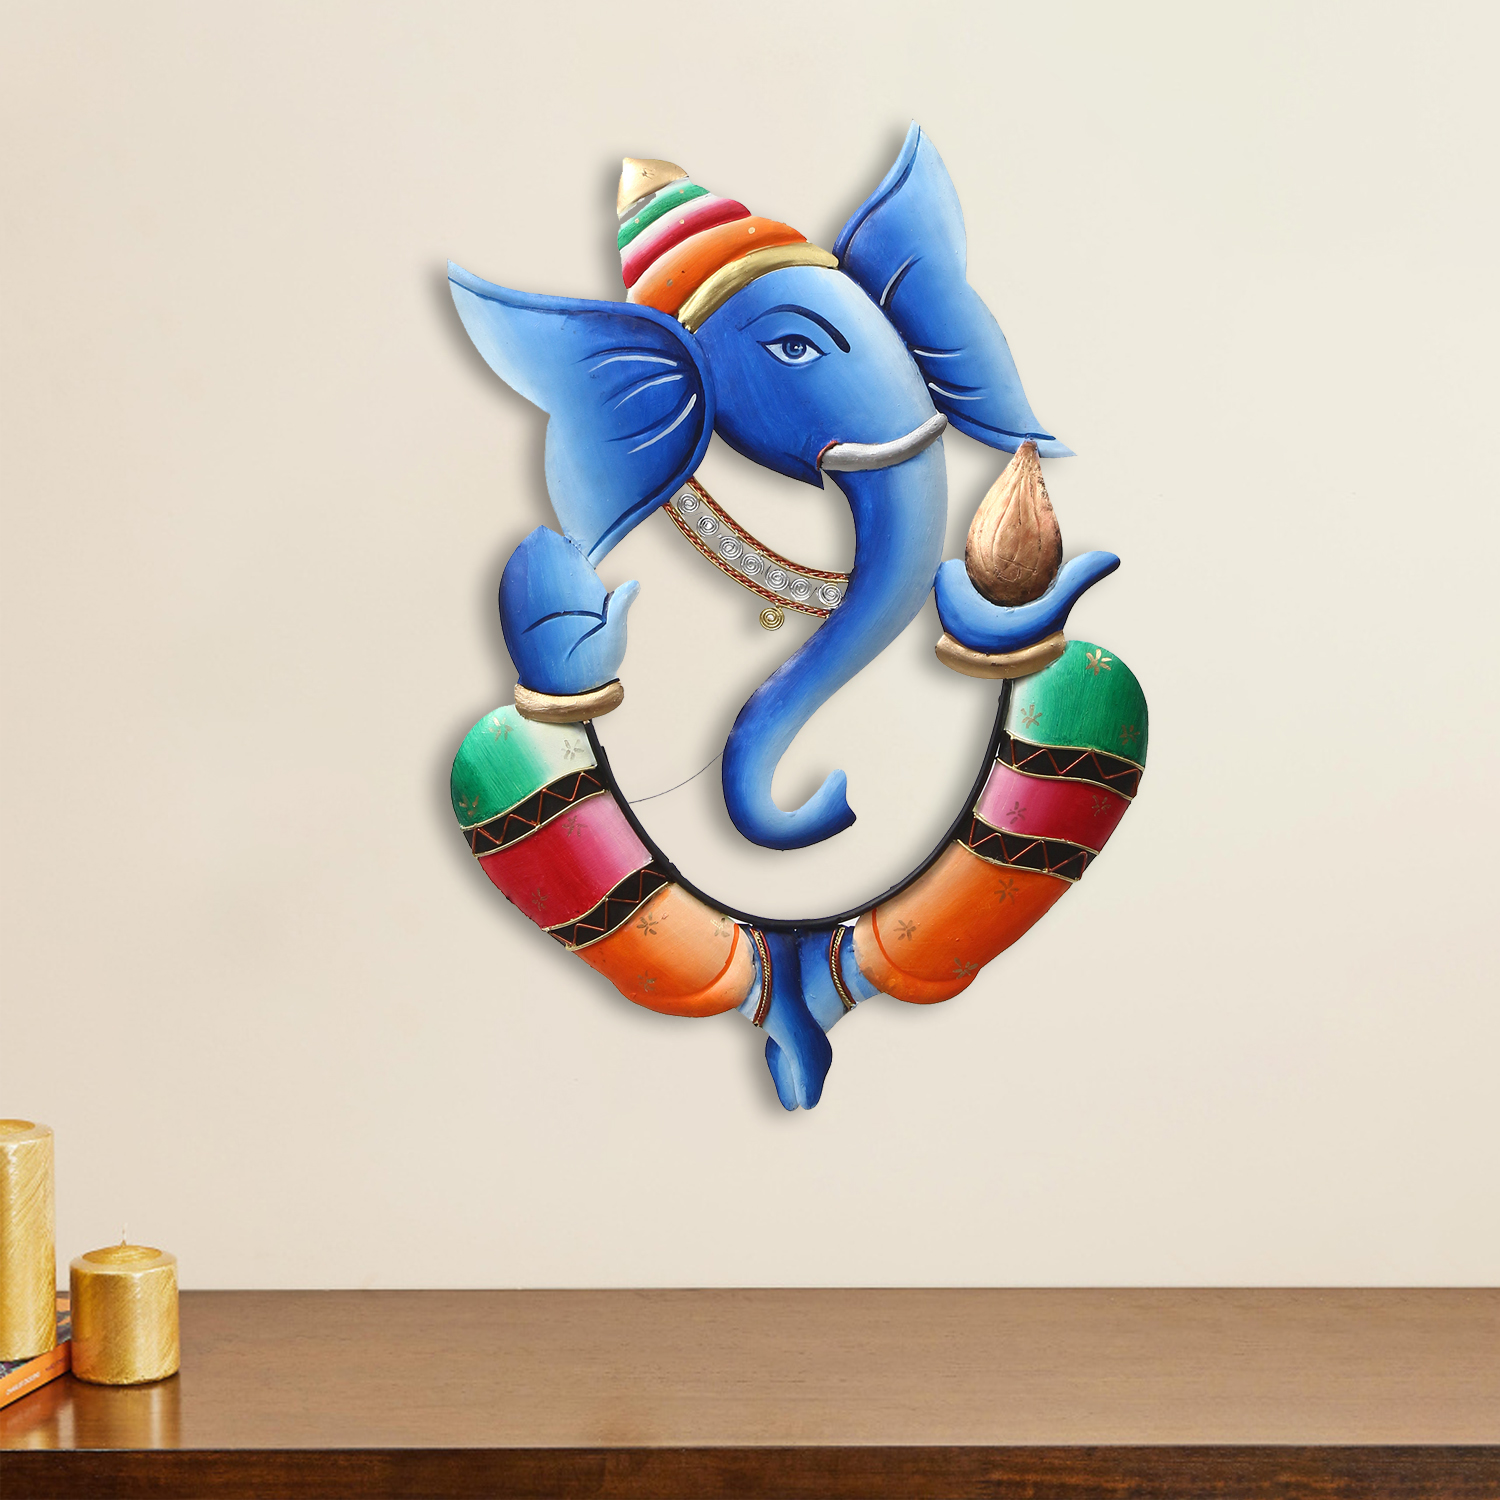 Colorful Lord Ganesha with Kalash in Hand Handcrafted Decorative Iron Wall Hanging Indian Home Decor